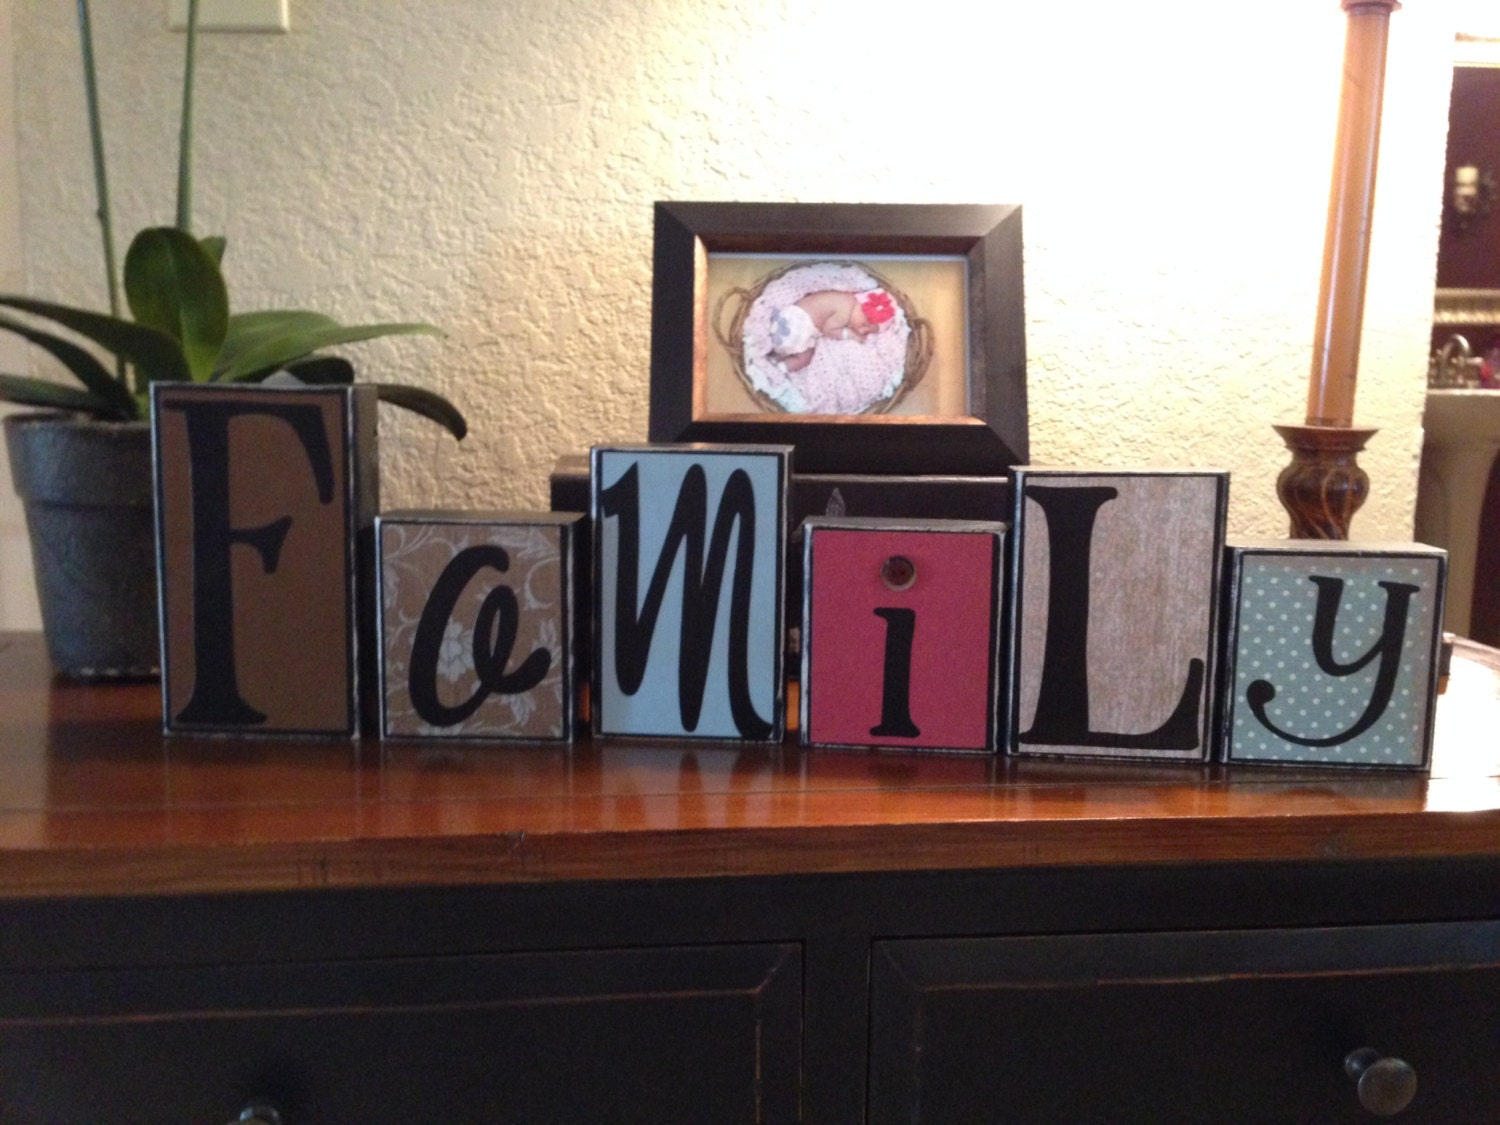 Https Www Etsy Com Listing 169487757 Decorative Block Letters Home Decor Wood